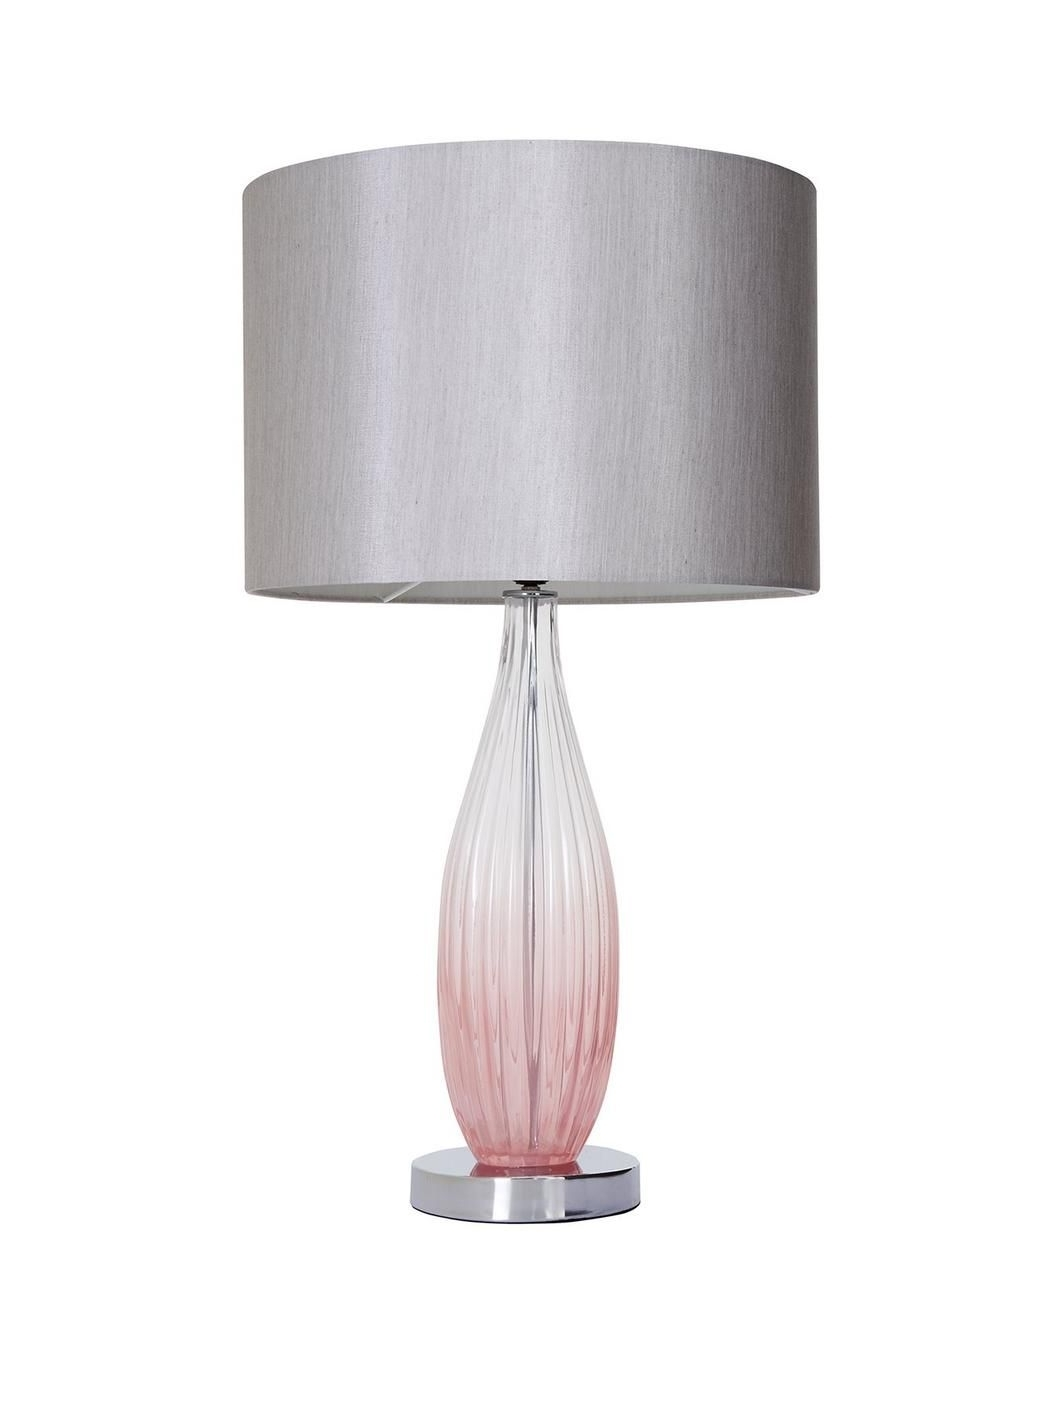 Well Liked Michelle Keegan Home Pink Ombre Glass Table Lamp (View 16 of 20)